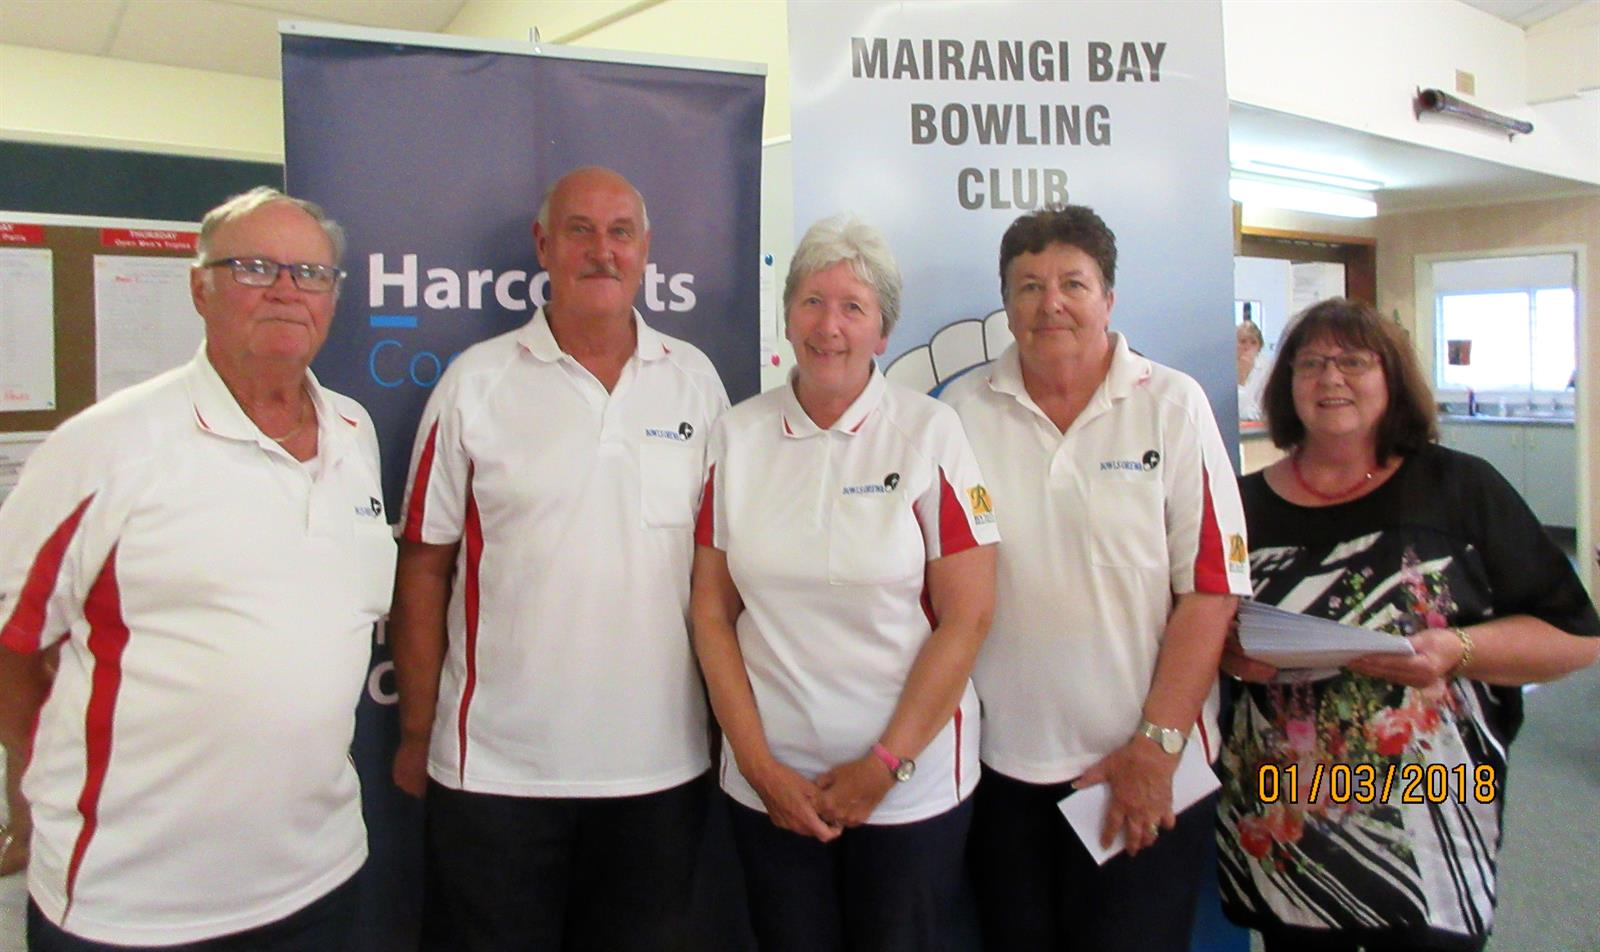 Harcourts Cooper & Company sponsored Classic results